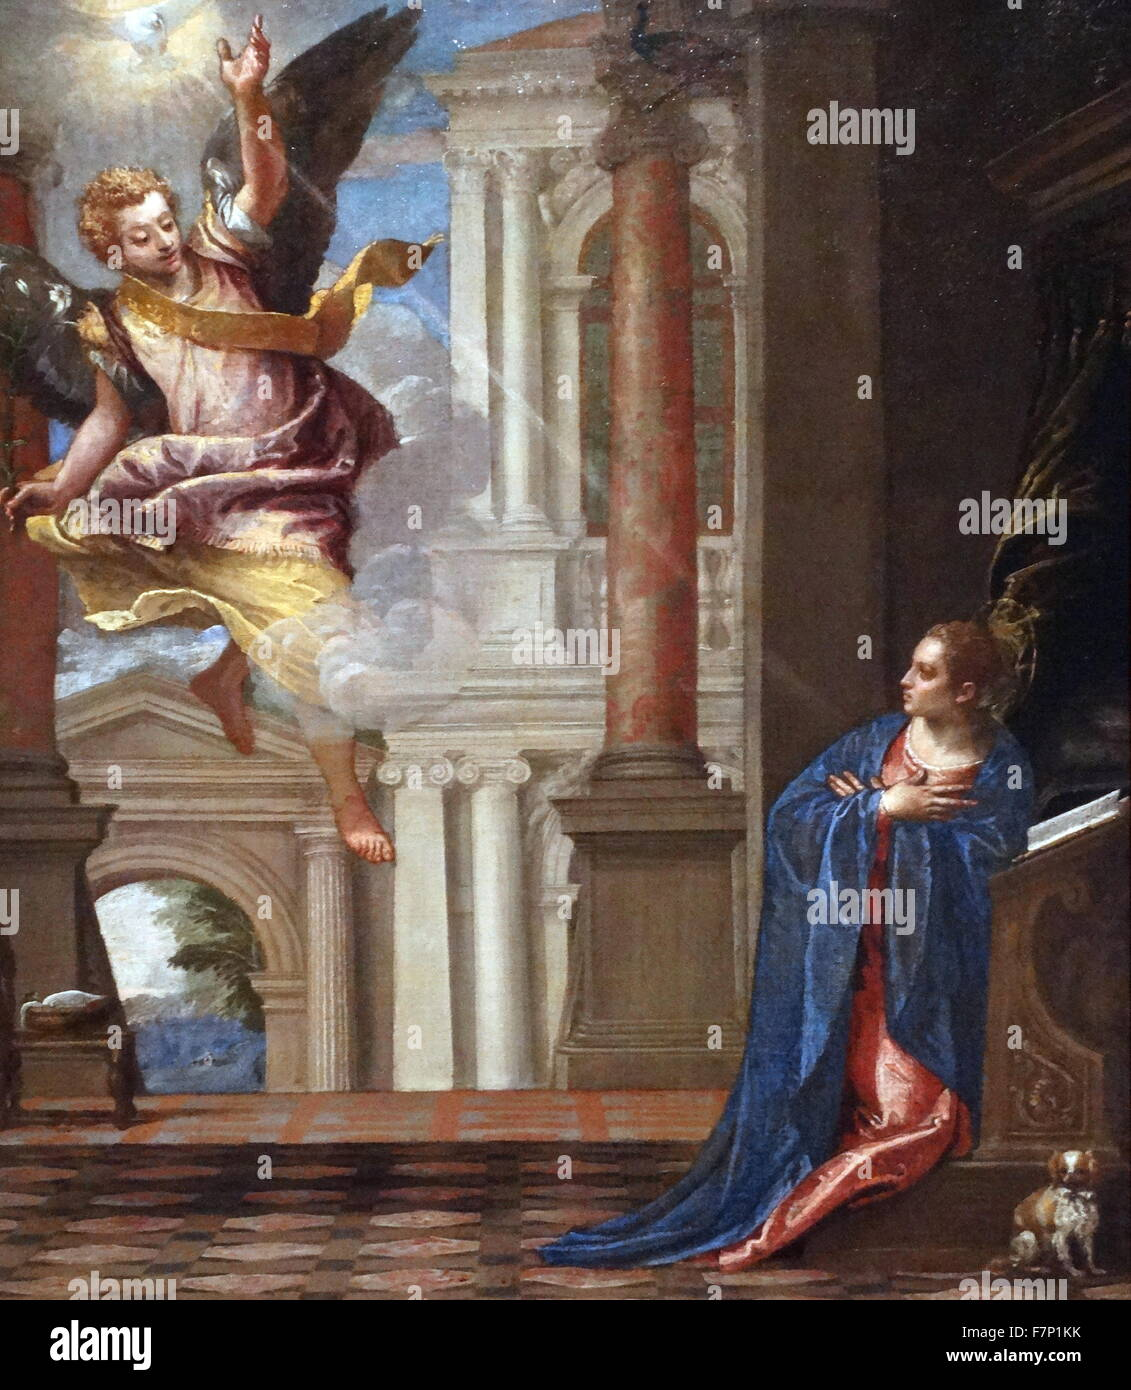 Painting titled 'Annunciation' by Paolo Veronese (1528-1588) Italian  Renaissance painter, best known for large history paintings of both  religious and ...